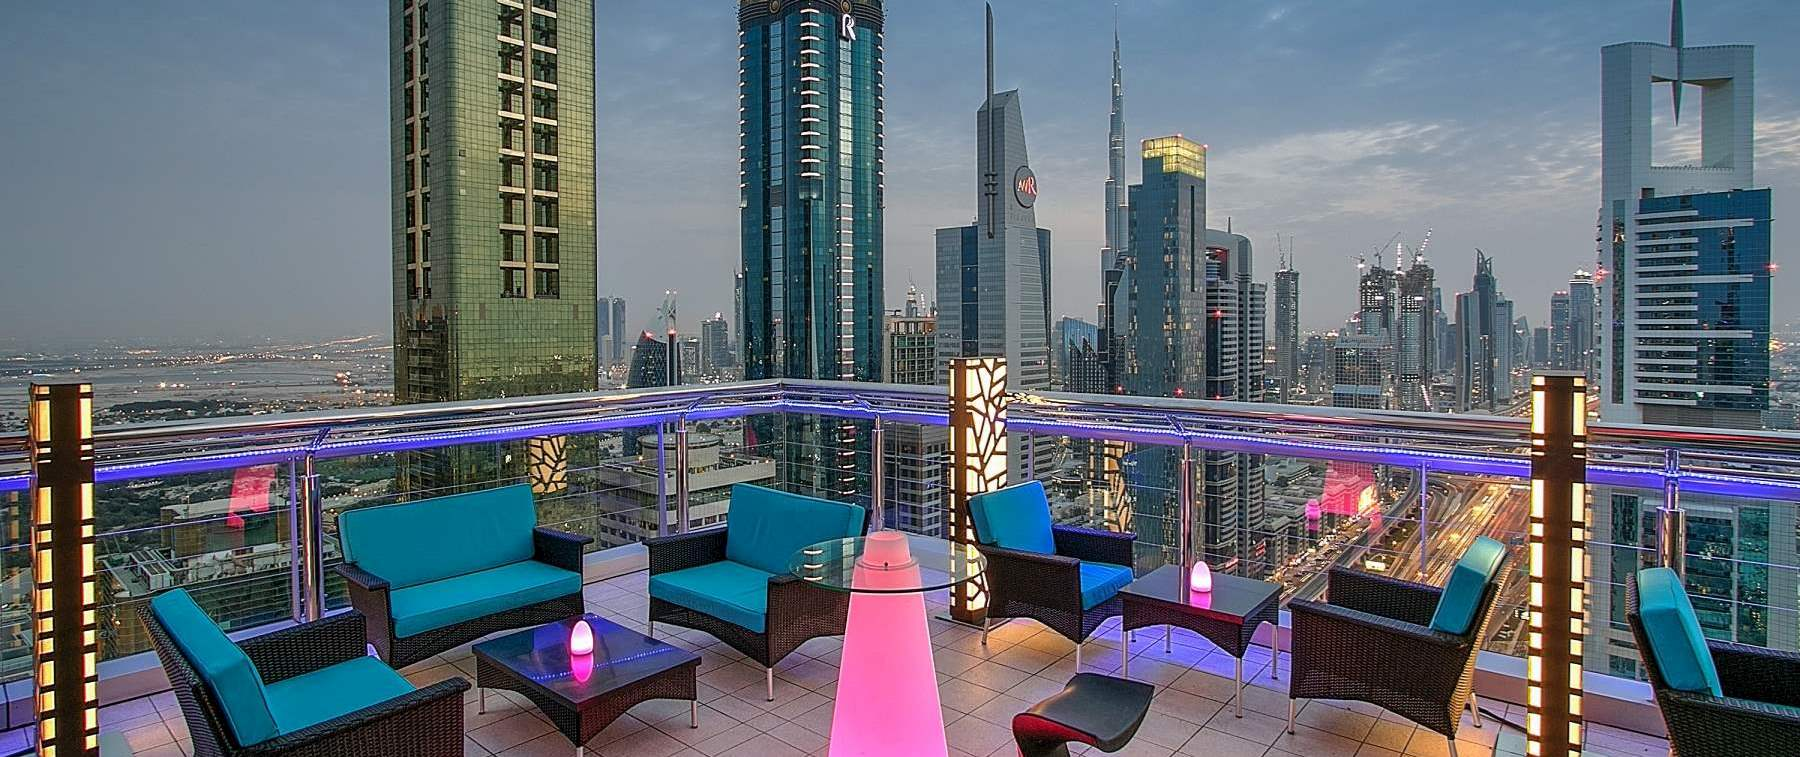 Open Air Terrace 155 Meters Above Ground